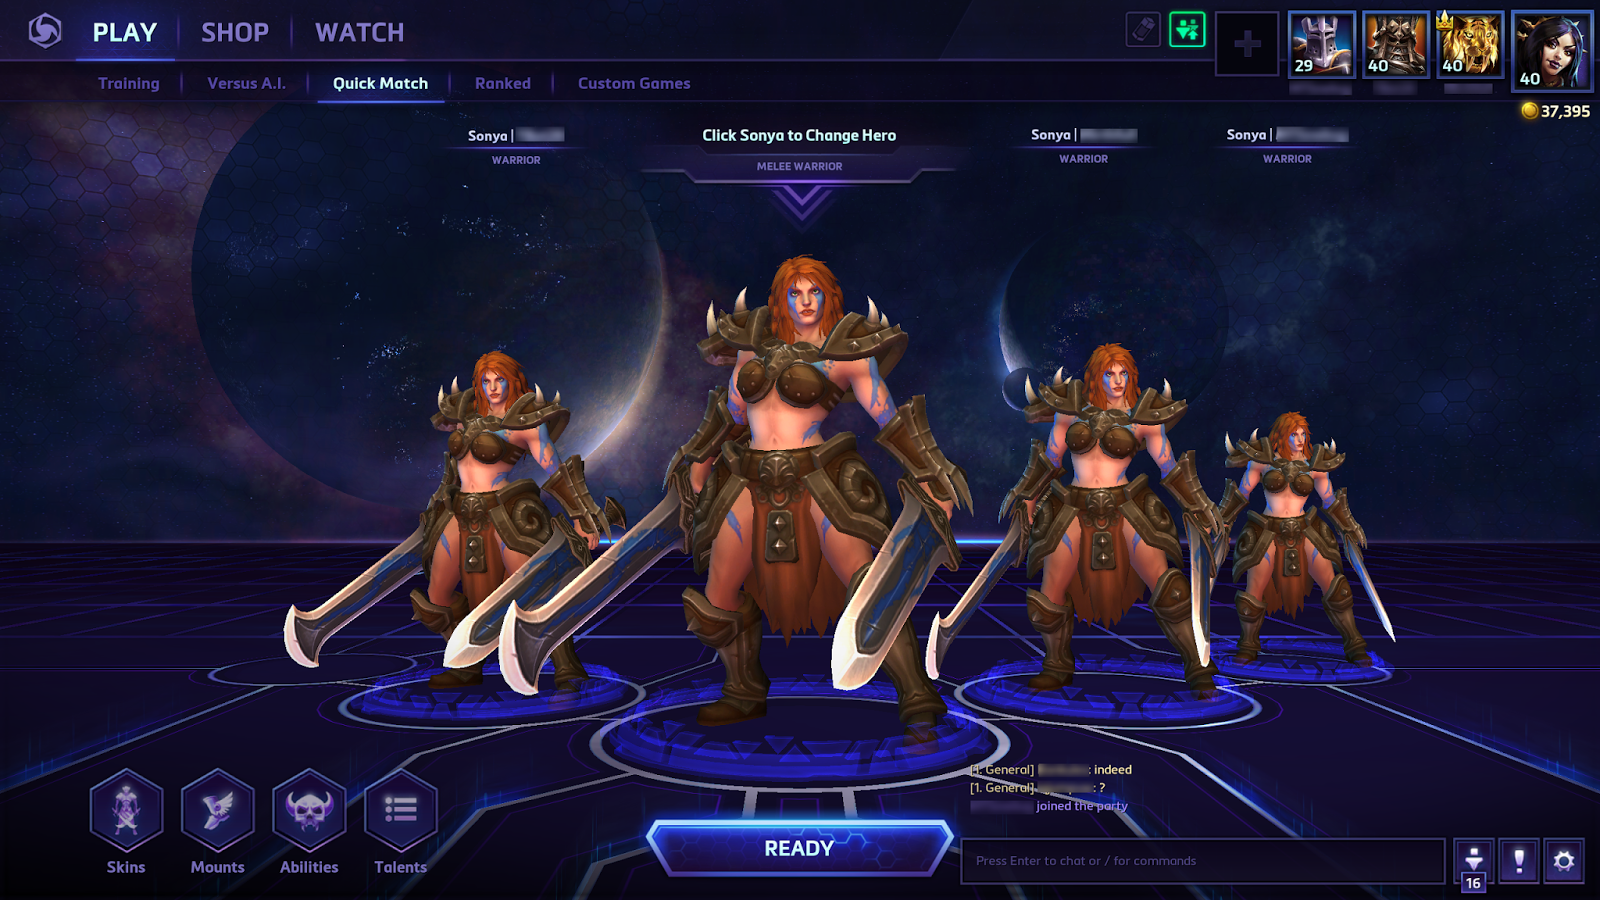 Aom Video Games Heroes Of The Storm Pc 2015 Yeah, i'll confess i did a big hotslogs search after making this post and.well, yep. heroes of the storm pc